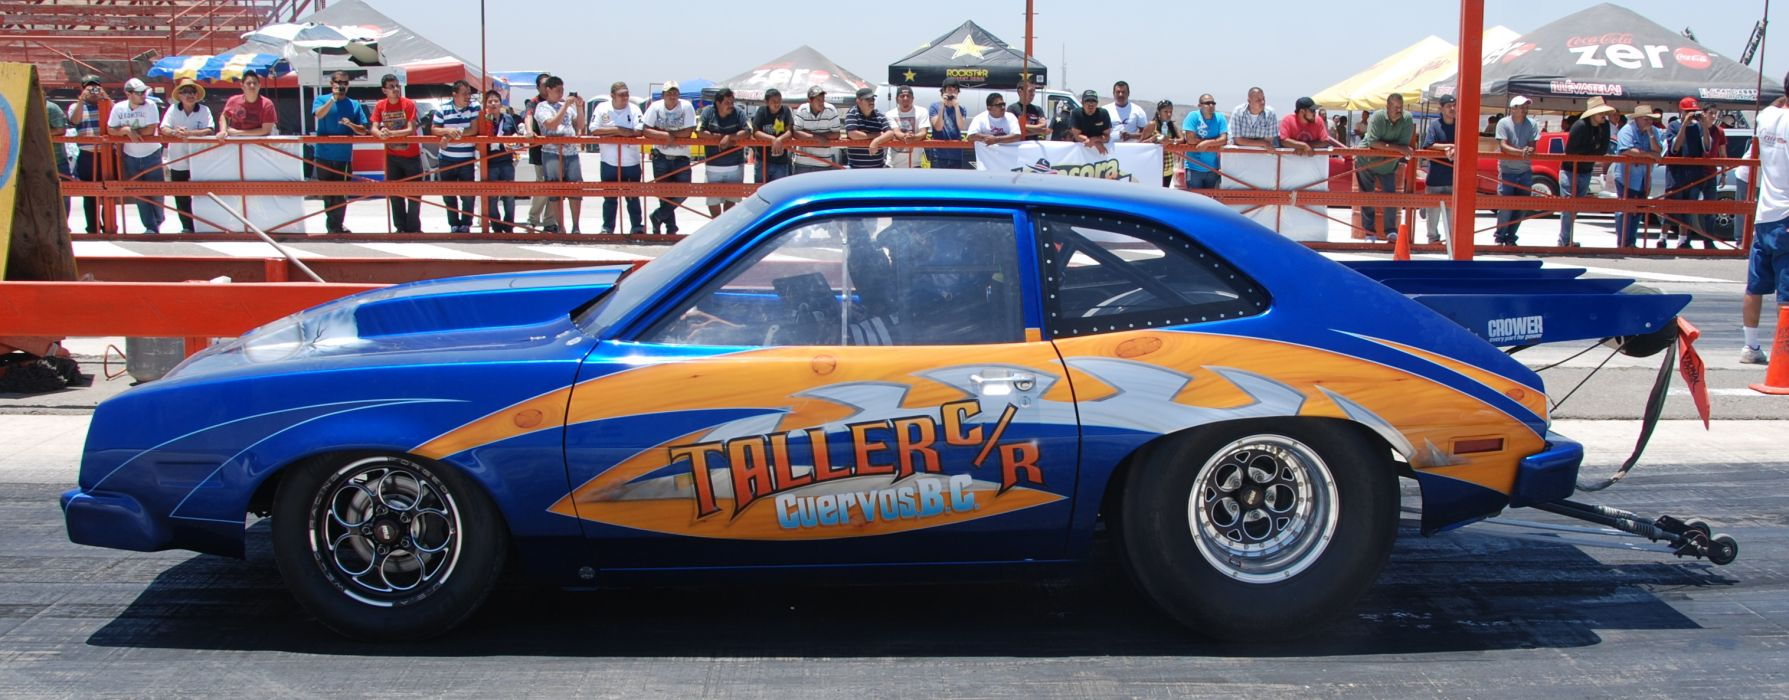 FORD PINTO classic hot rod rods drag racing race   g wallpaper